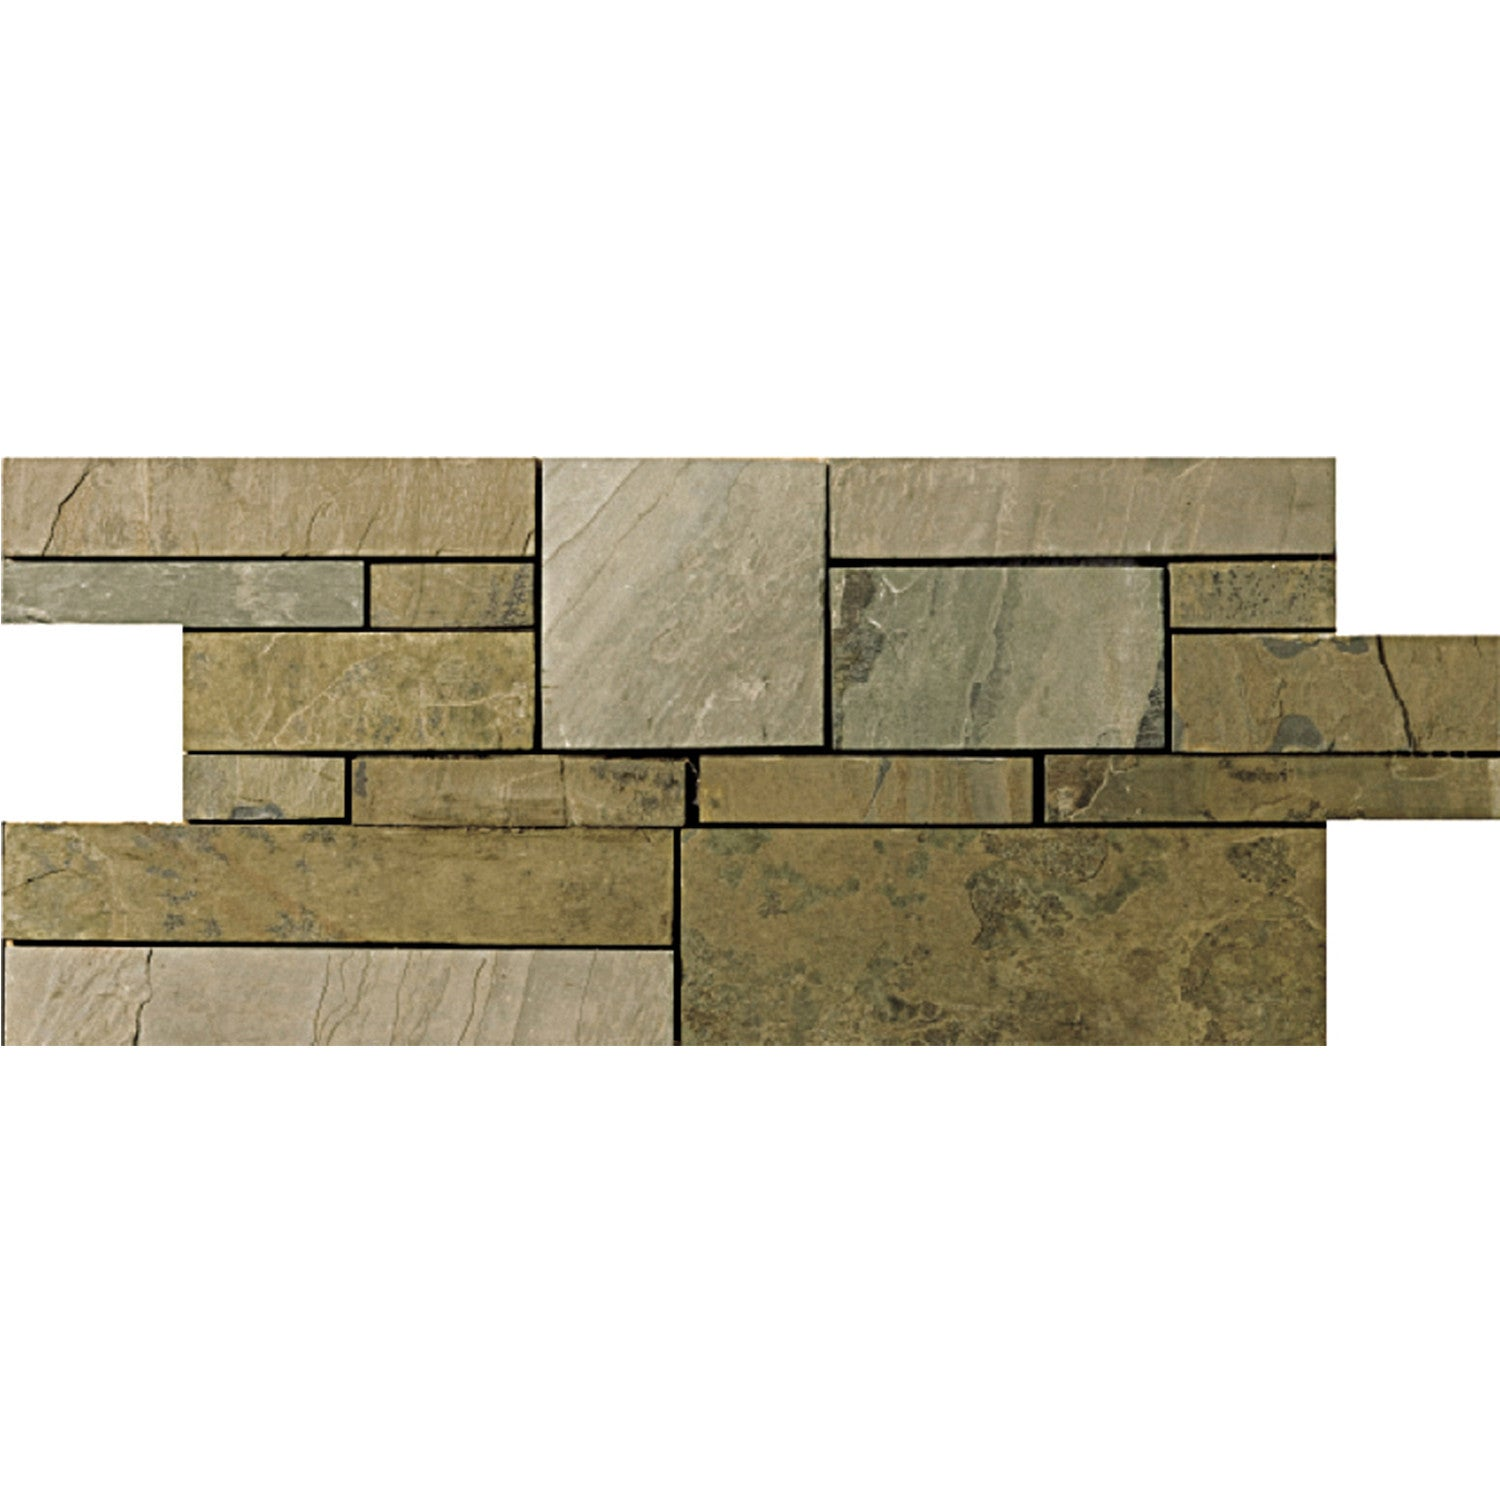 Rustic gold collection slate quartzite tile by emser tile rustic gold collection slate quartzite tile by emser tile dailygadgetfo Choice Image